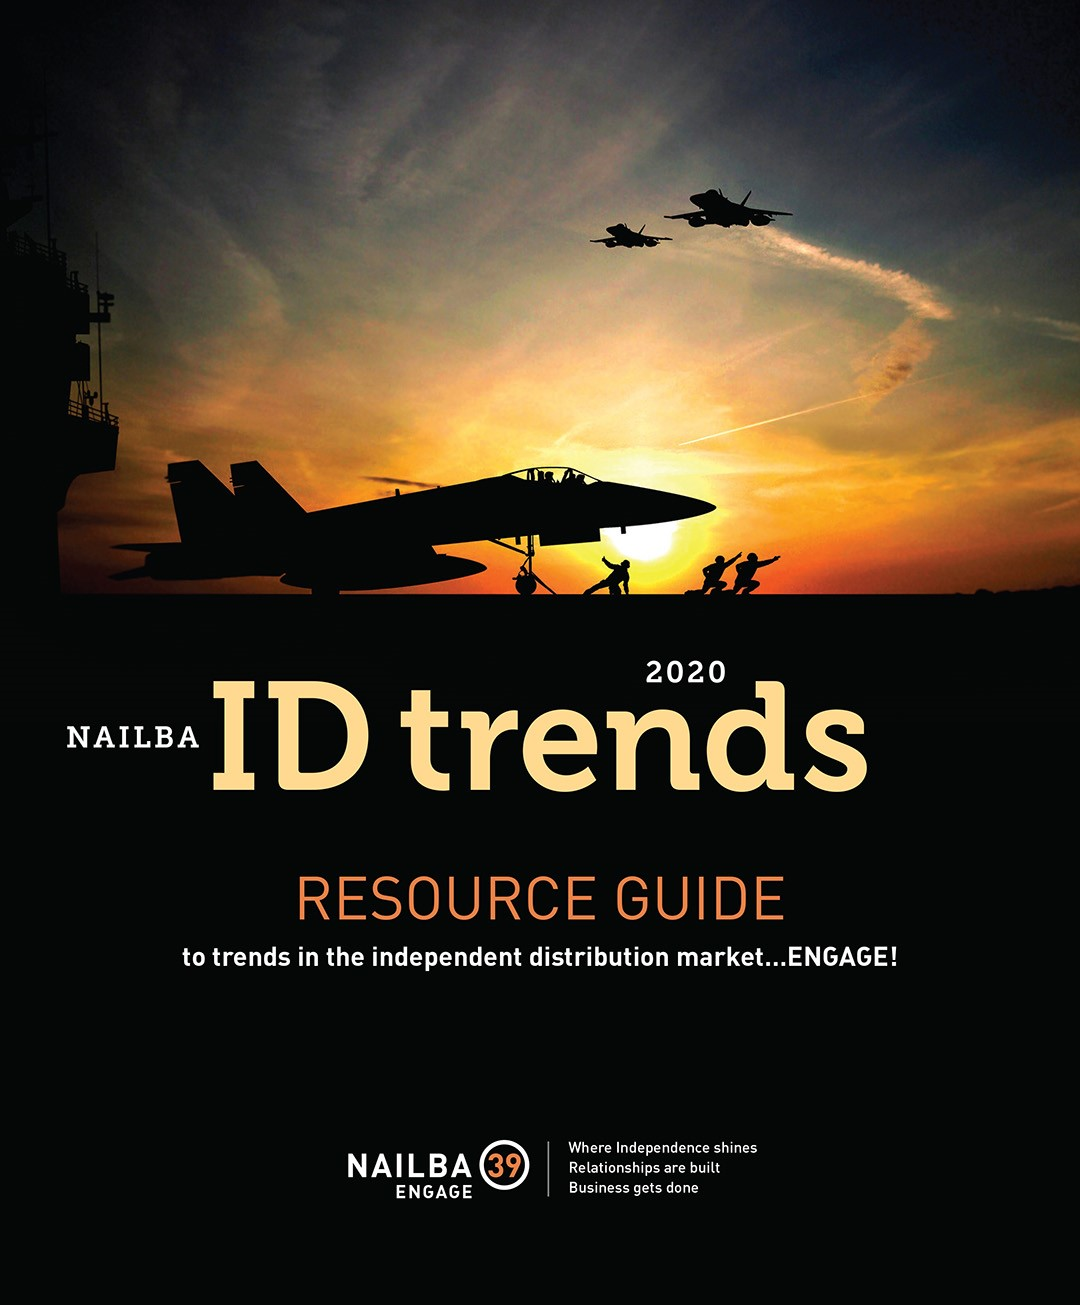 ID trends 2020